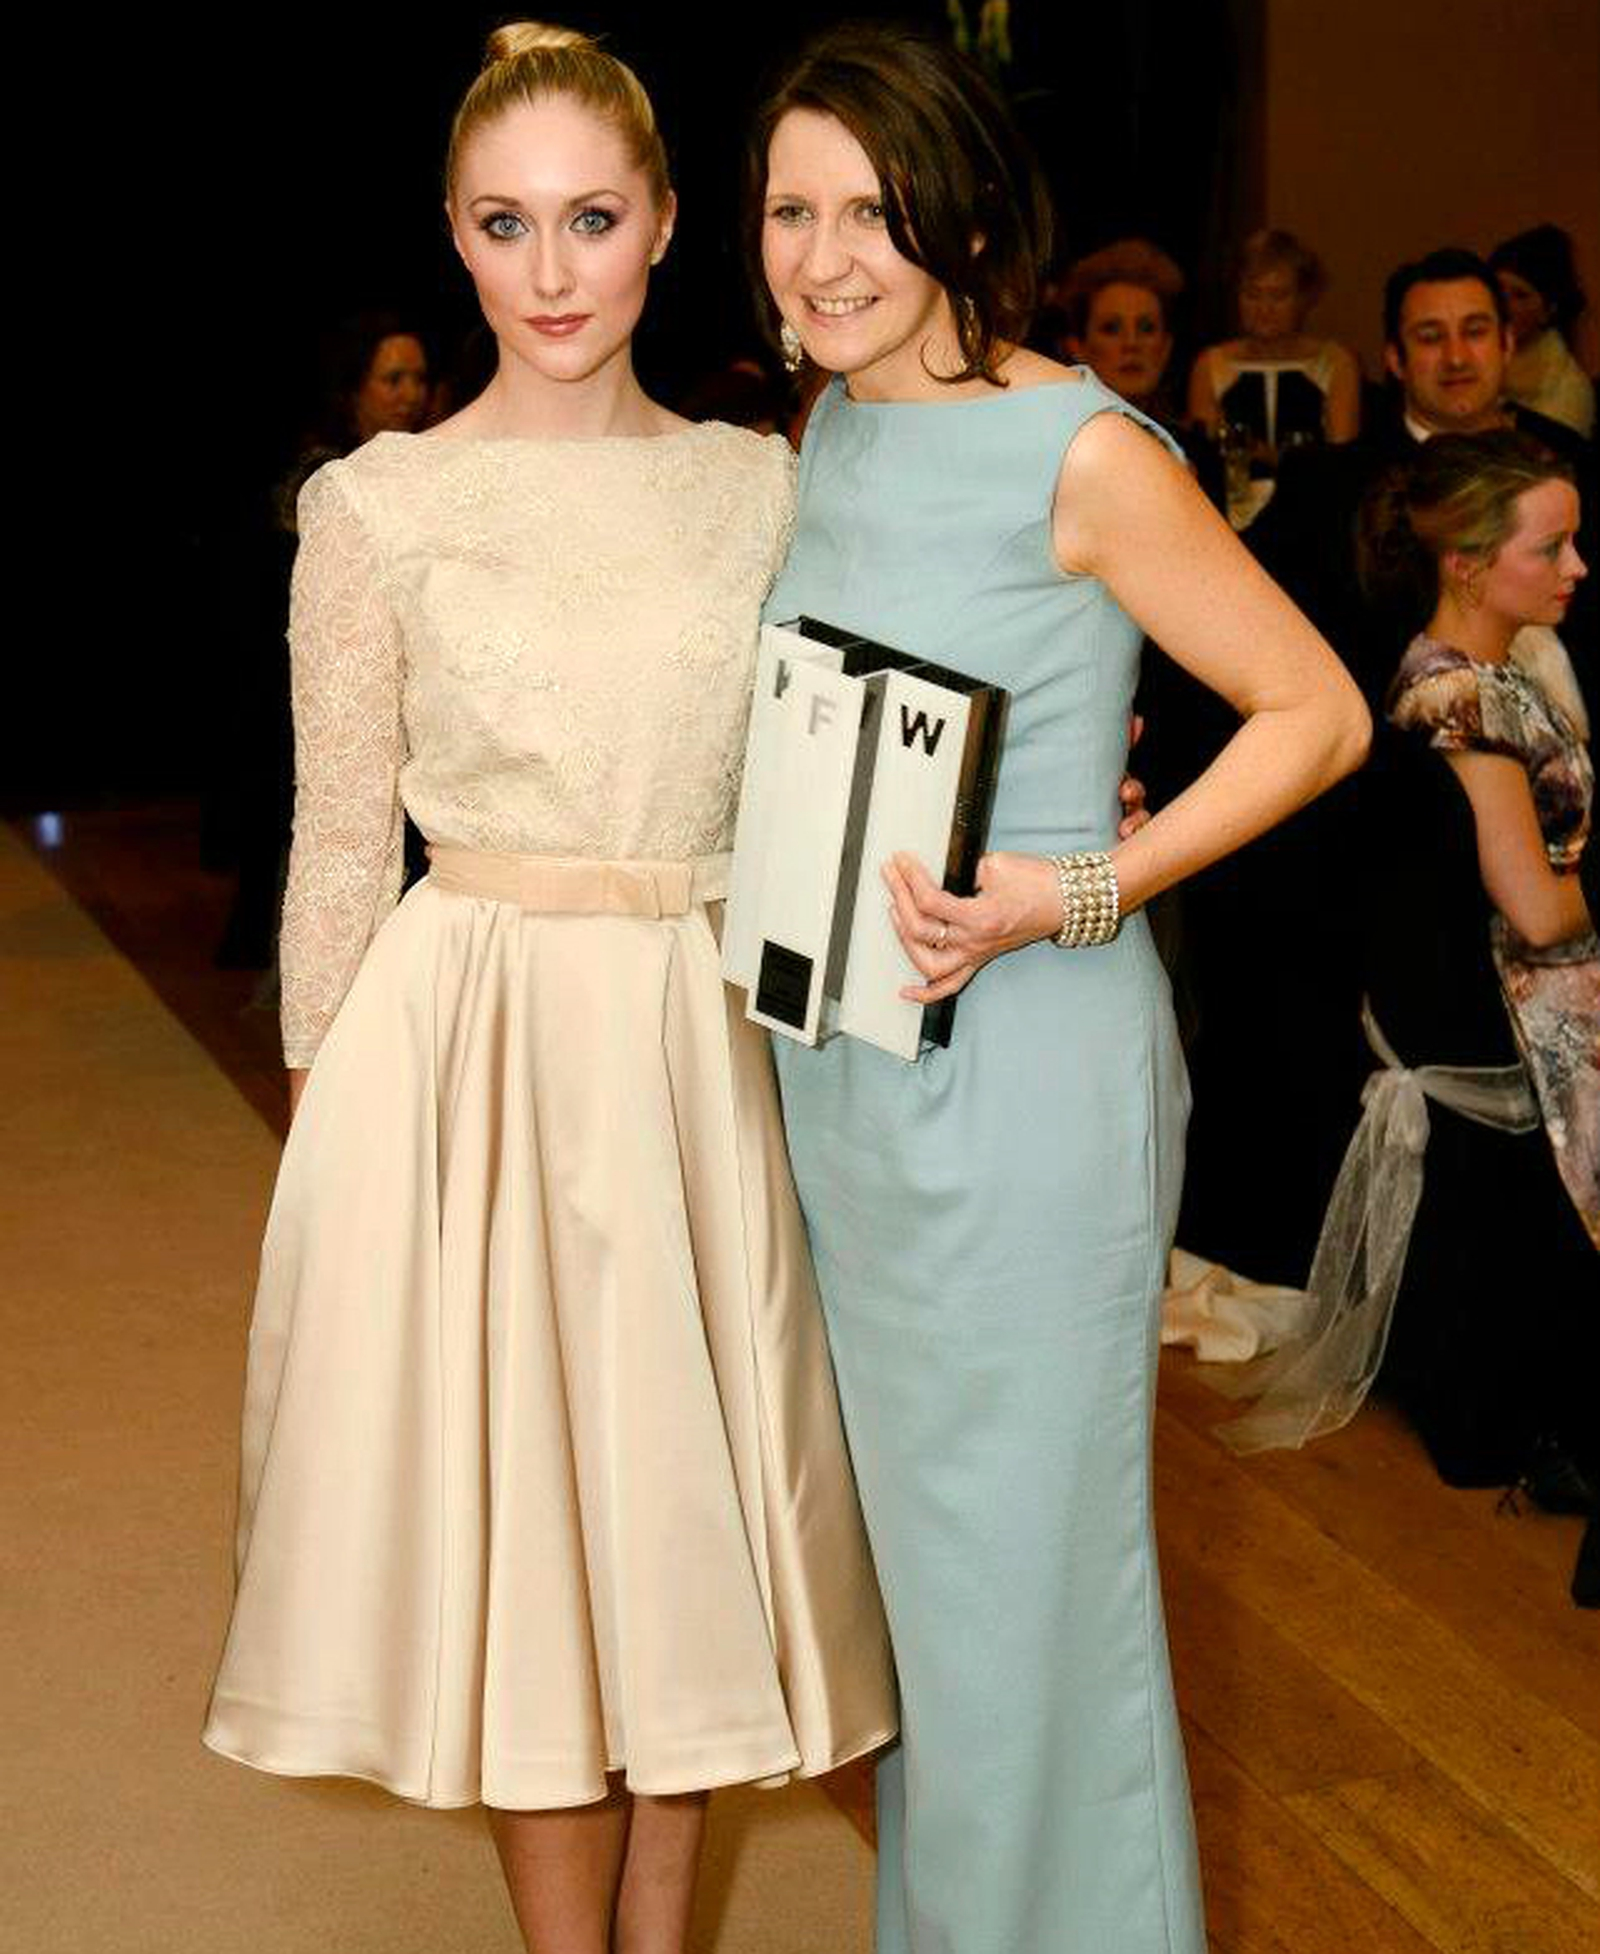 Kerry Fashion Designer Of The Year Tina Griffin